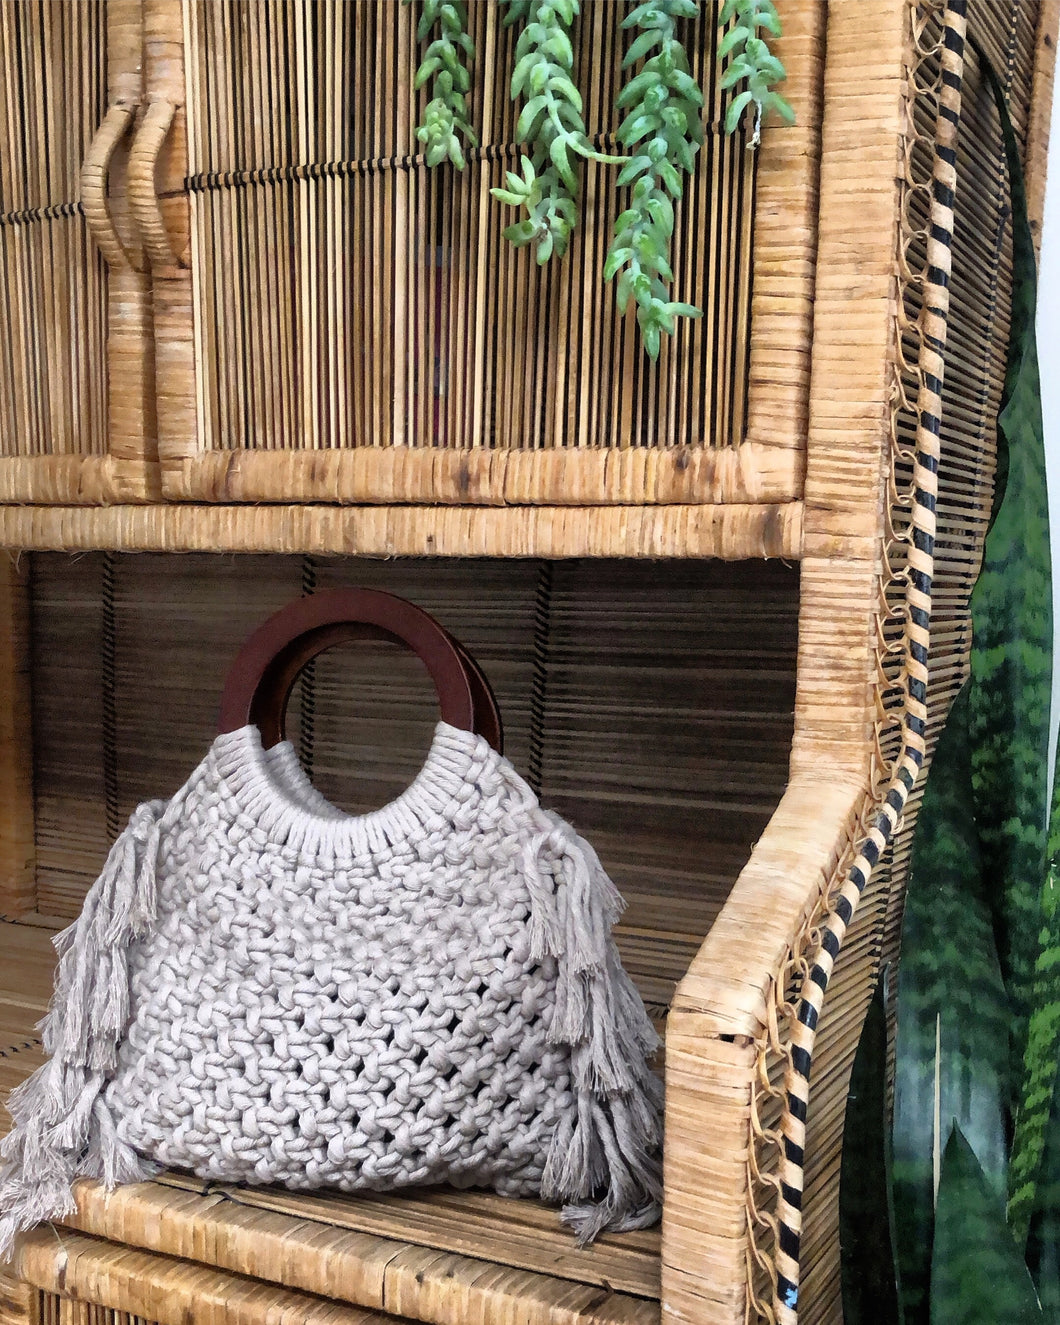 Macrame Handbag with Brittany Raimo